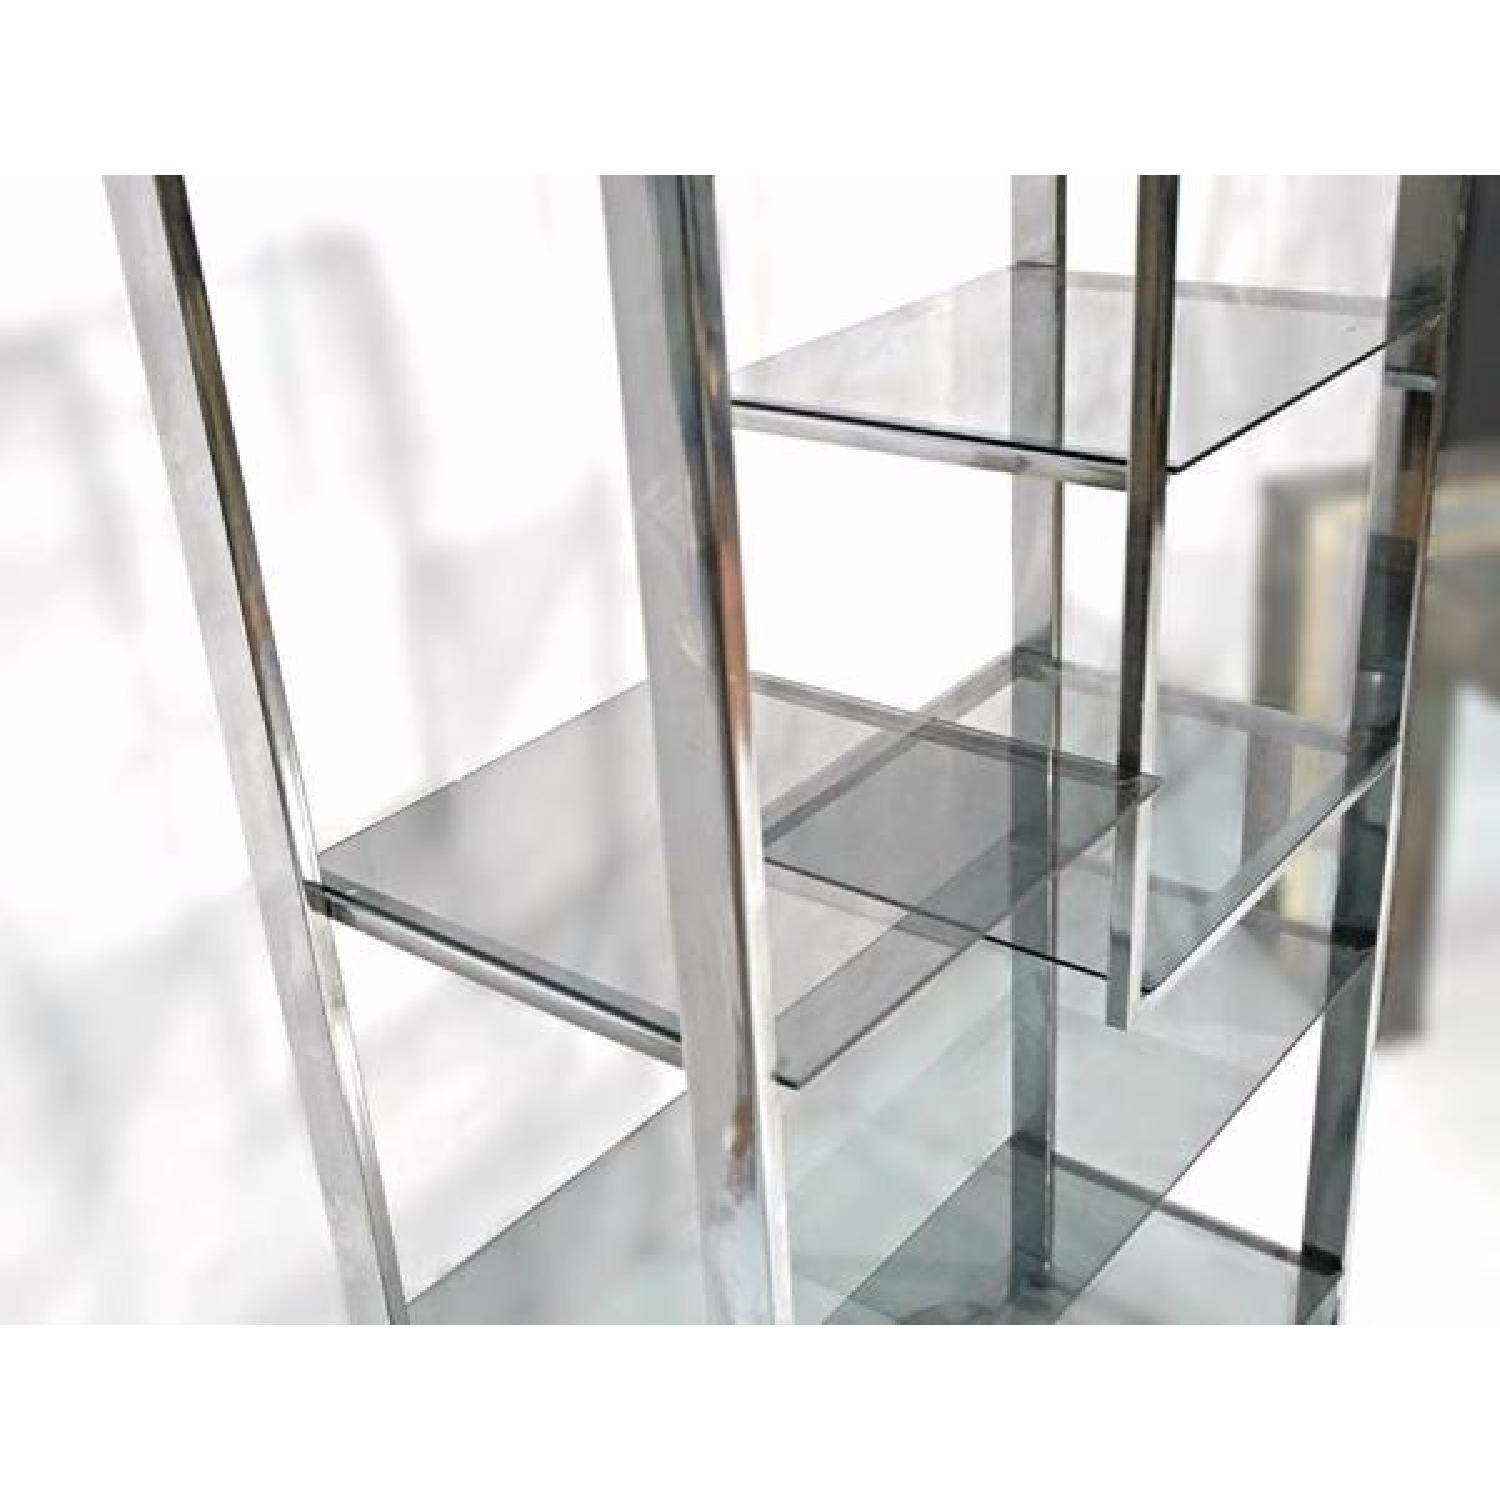 Milo Baughman Chrome Arched Top Etagere Smoked Glass Shelves - image-7